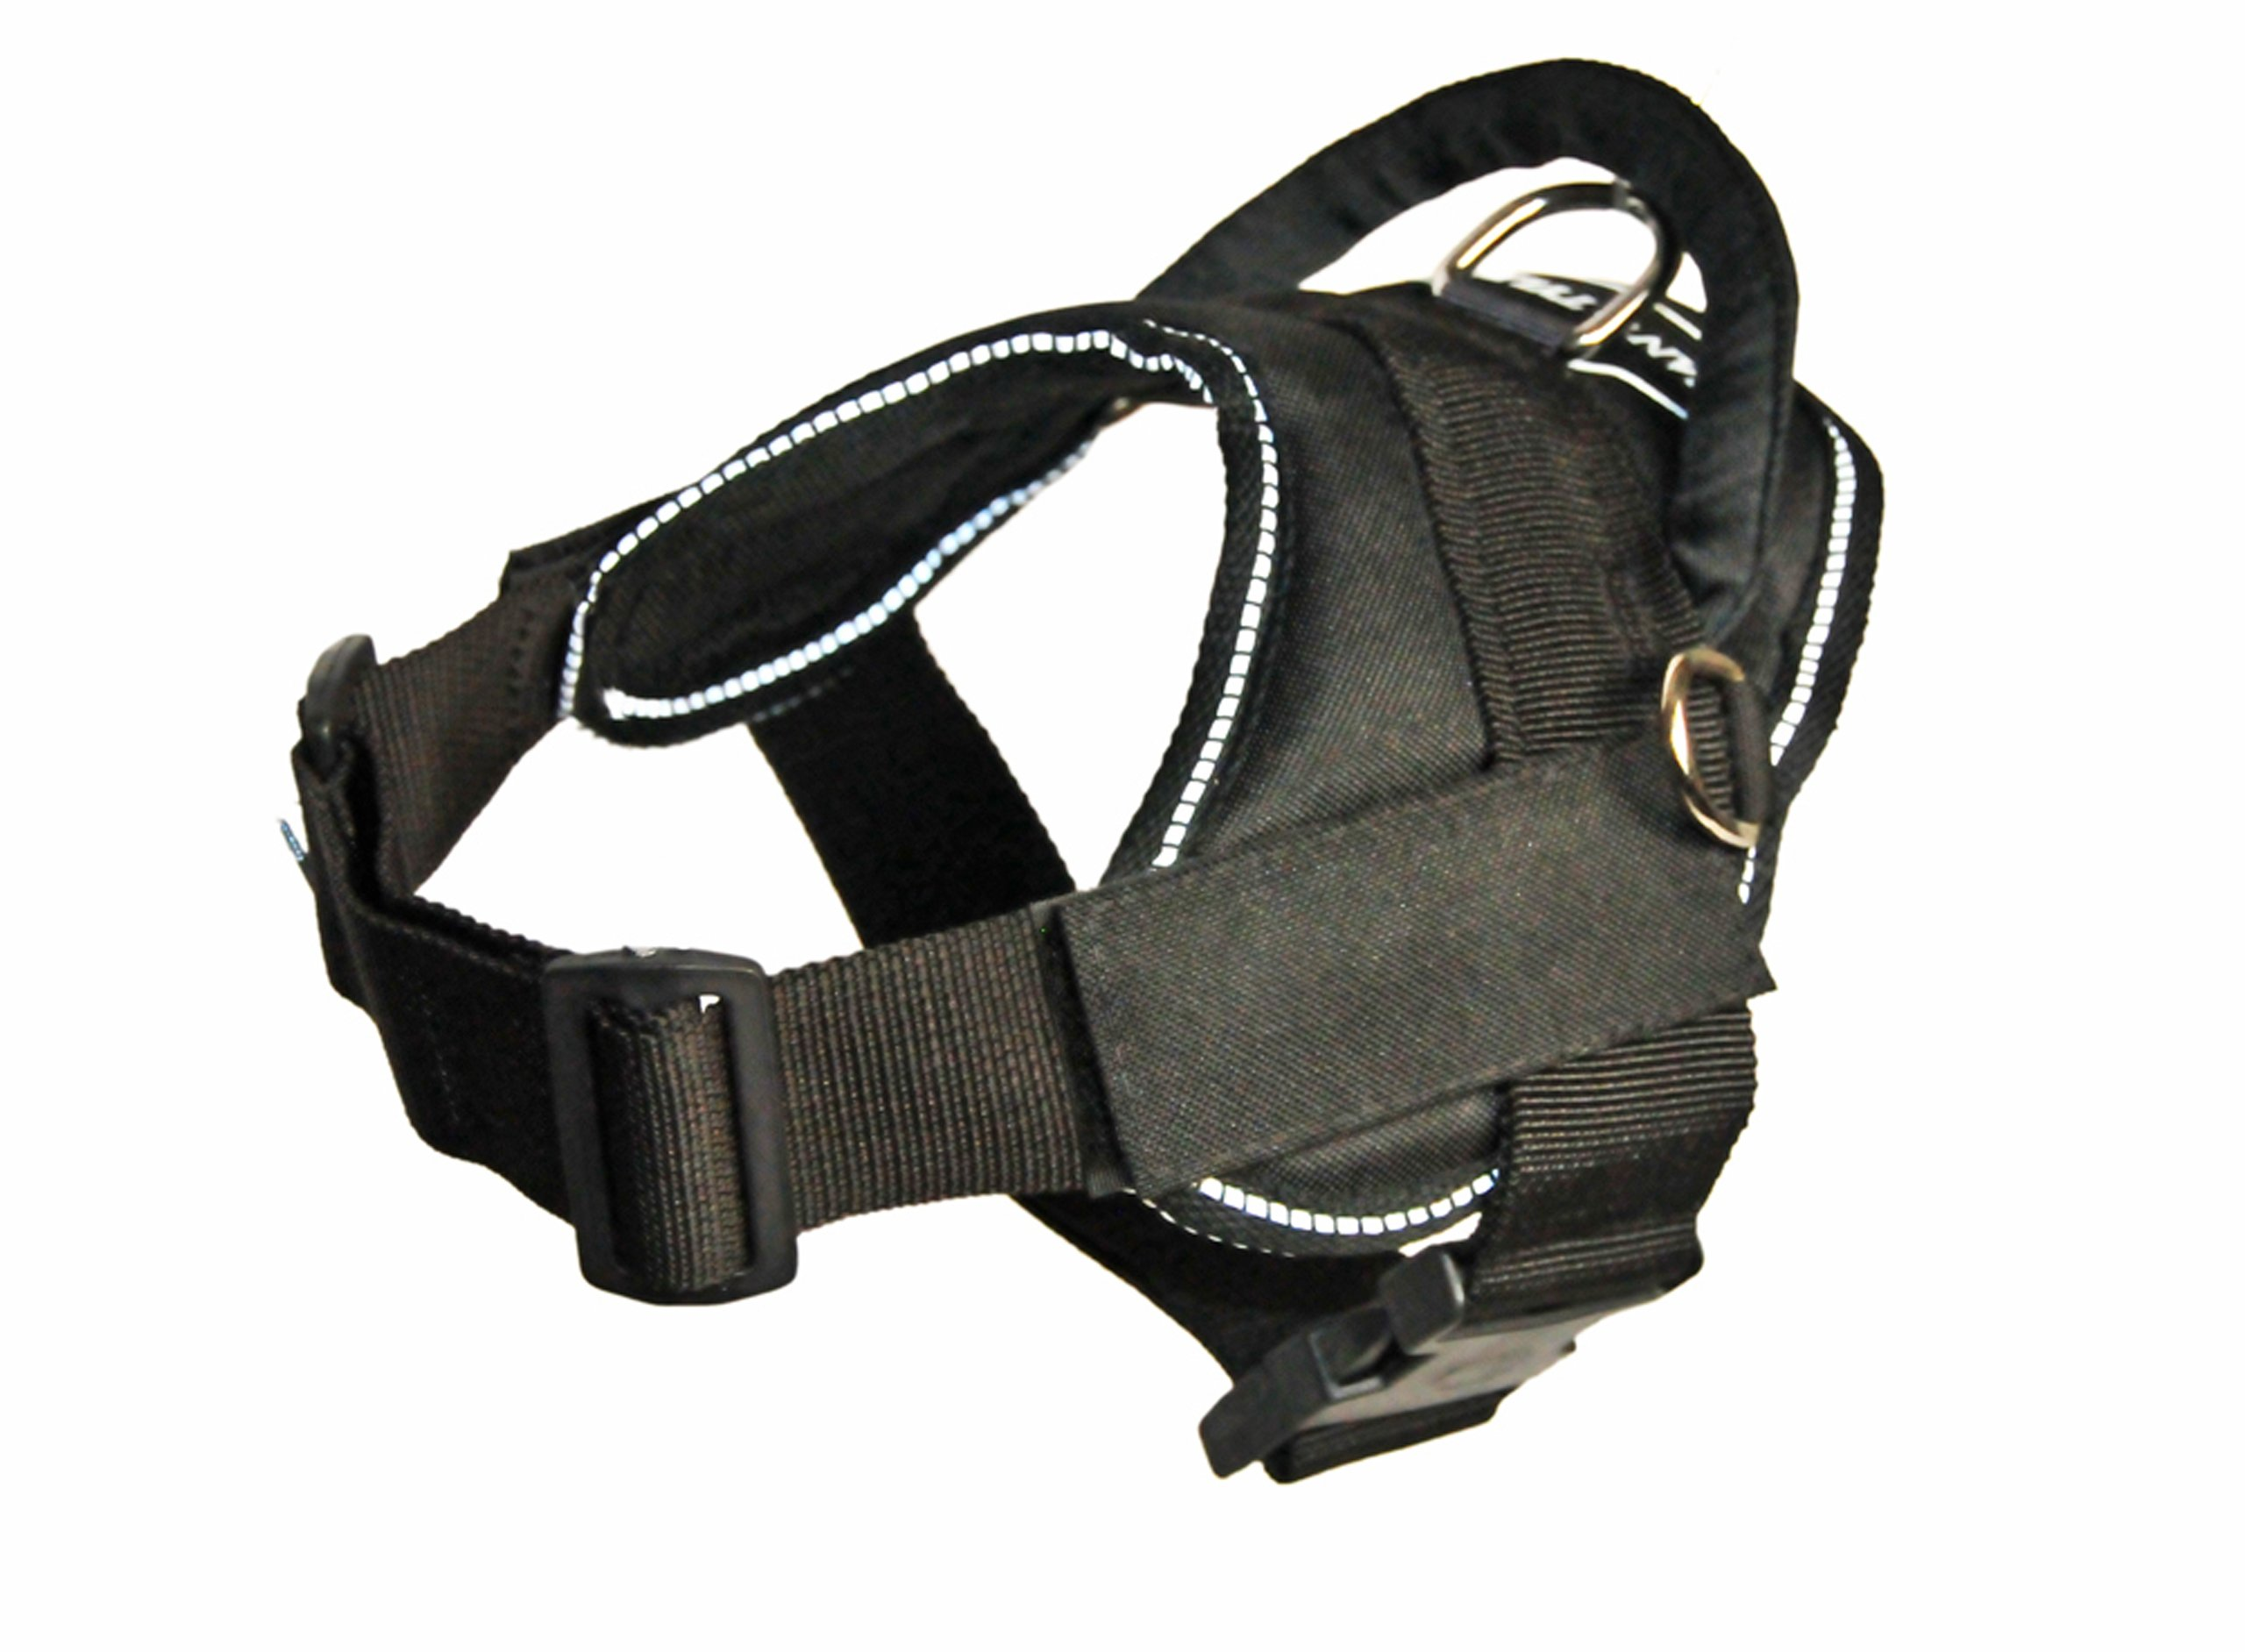 DT Fun Harness, Black with Reflective Trim, X-Small - Fits Girth Size: 20-Inch to 23-Inch